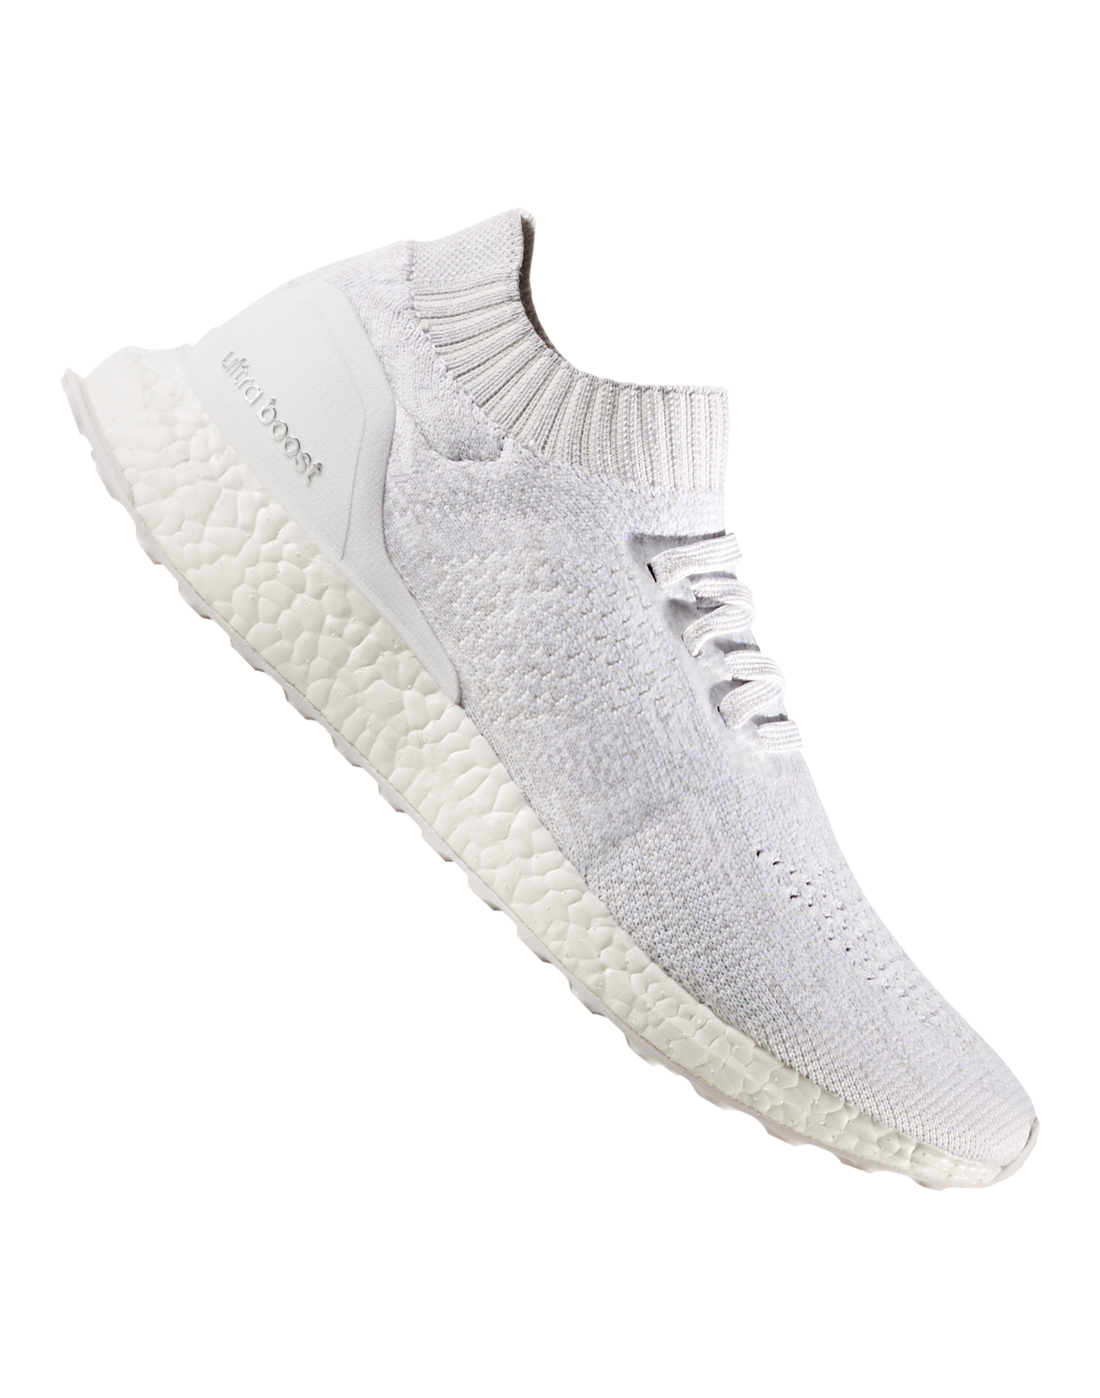 39b21a8fc7581 adidas. Mens Ultra Boost Uncaged. Mens Ultra Boost Uncaged ...